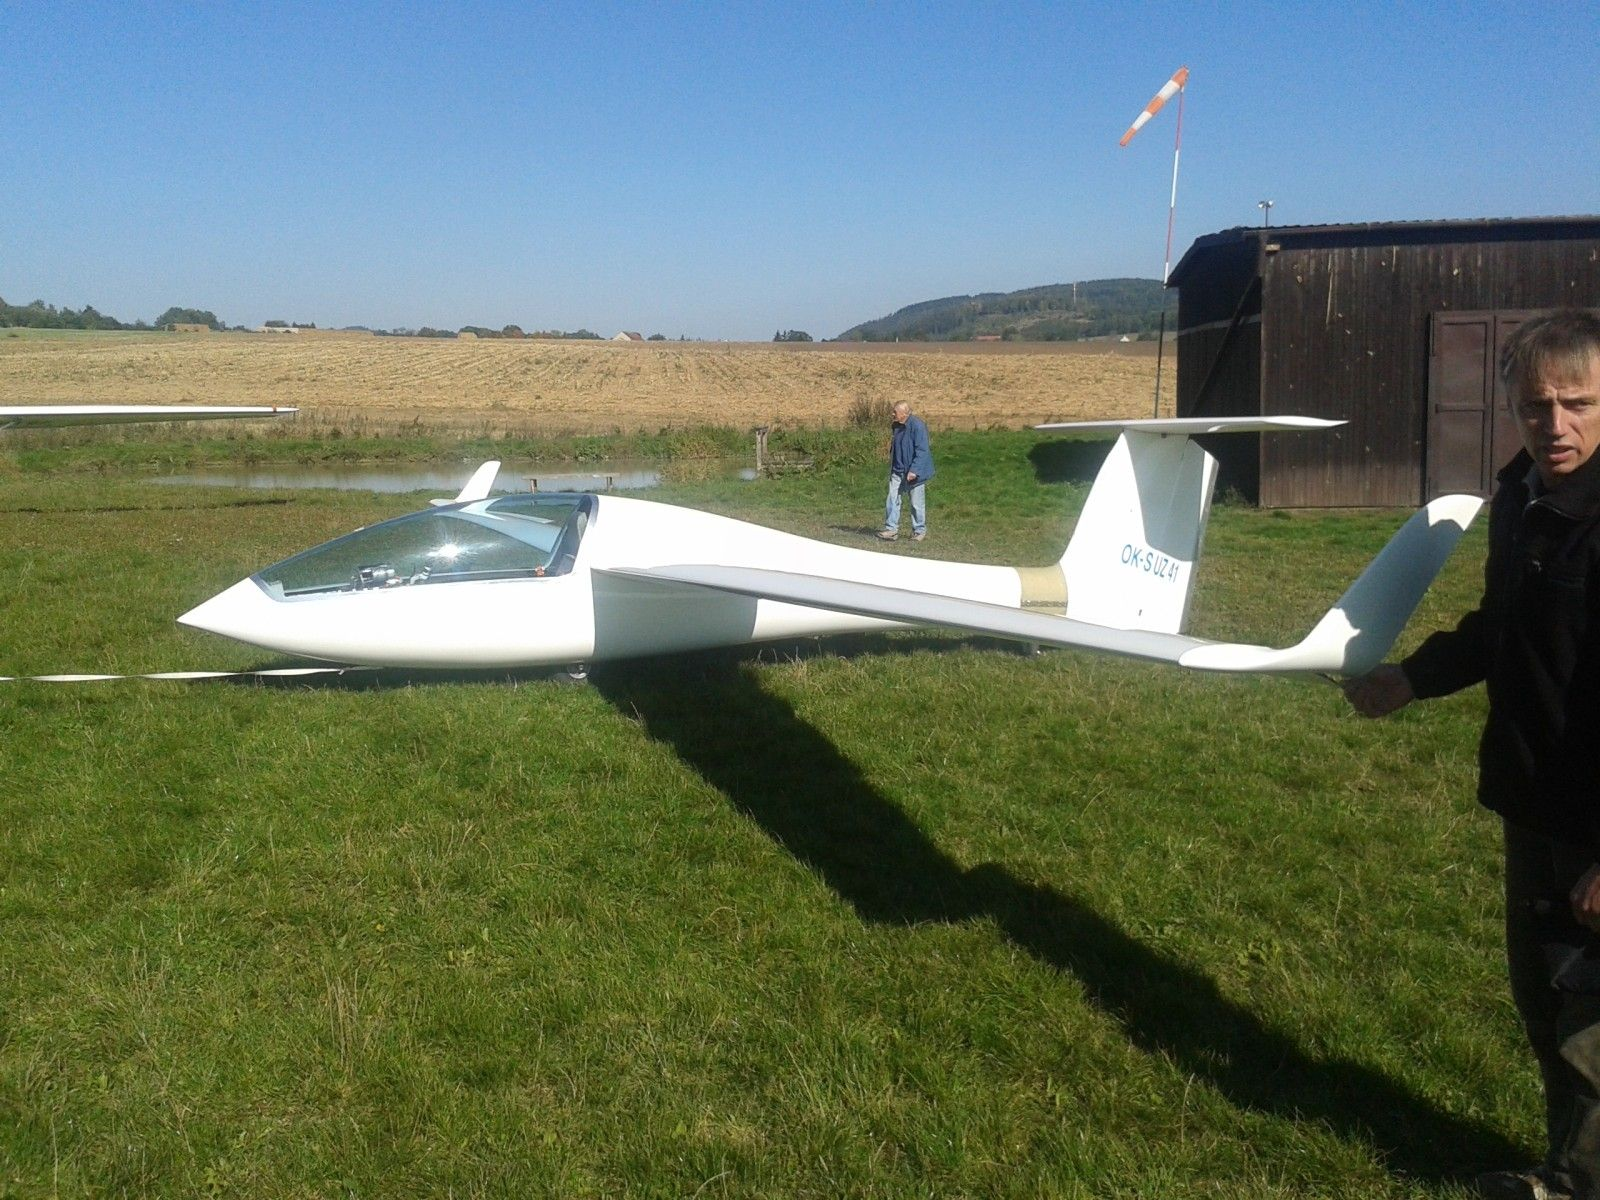 A New Carbon Composite Powered Ultralight Glider - Soaring Cafe